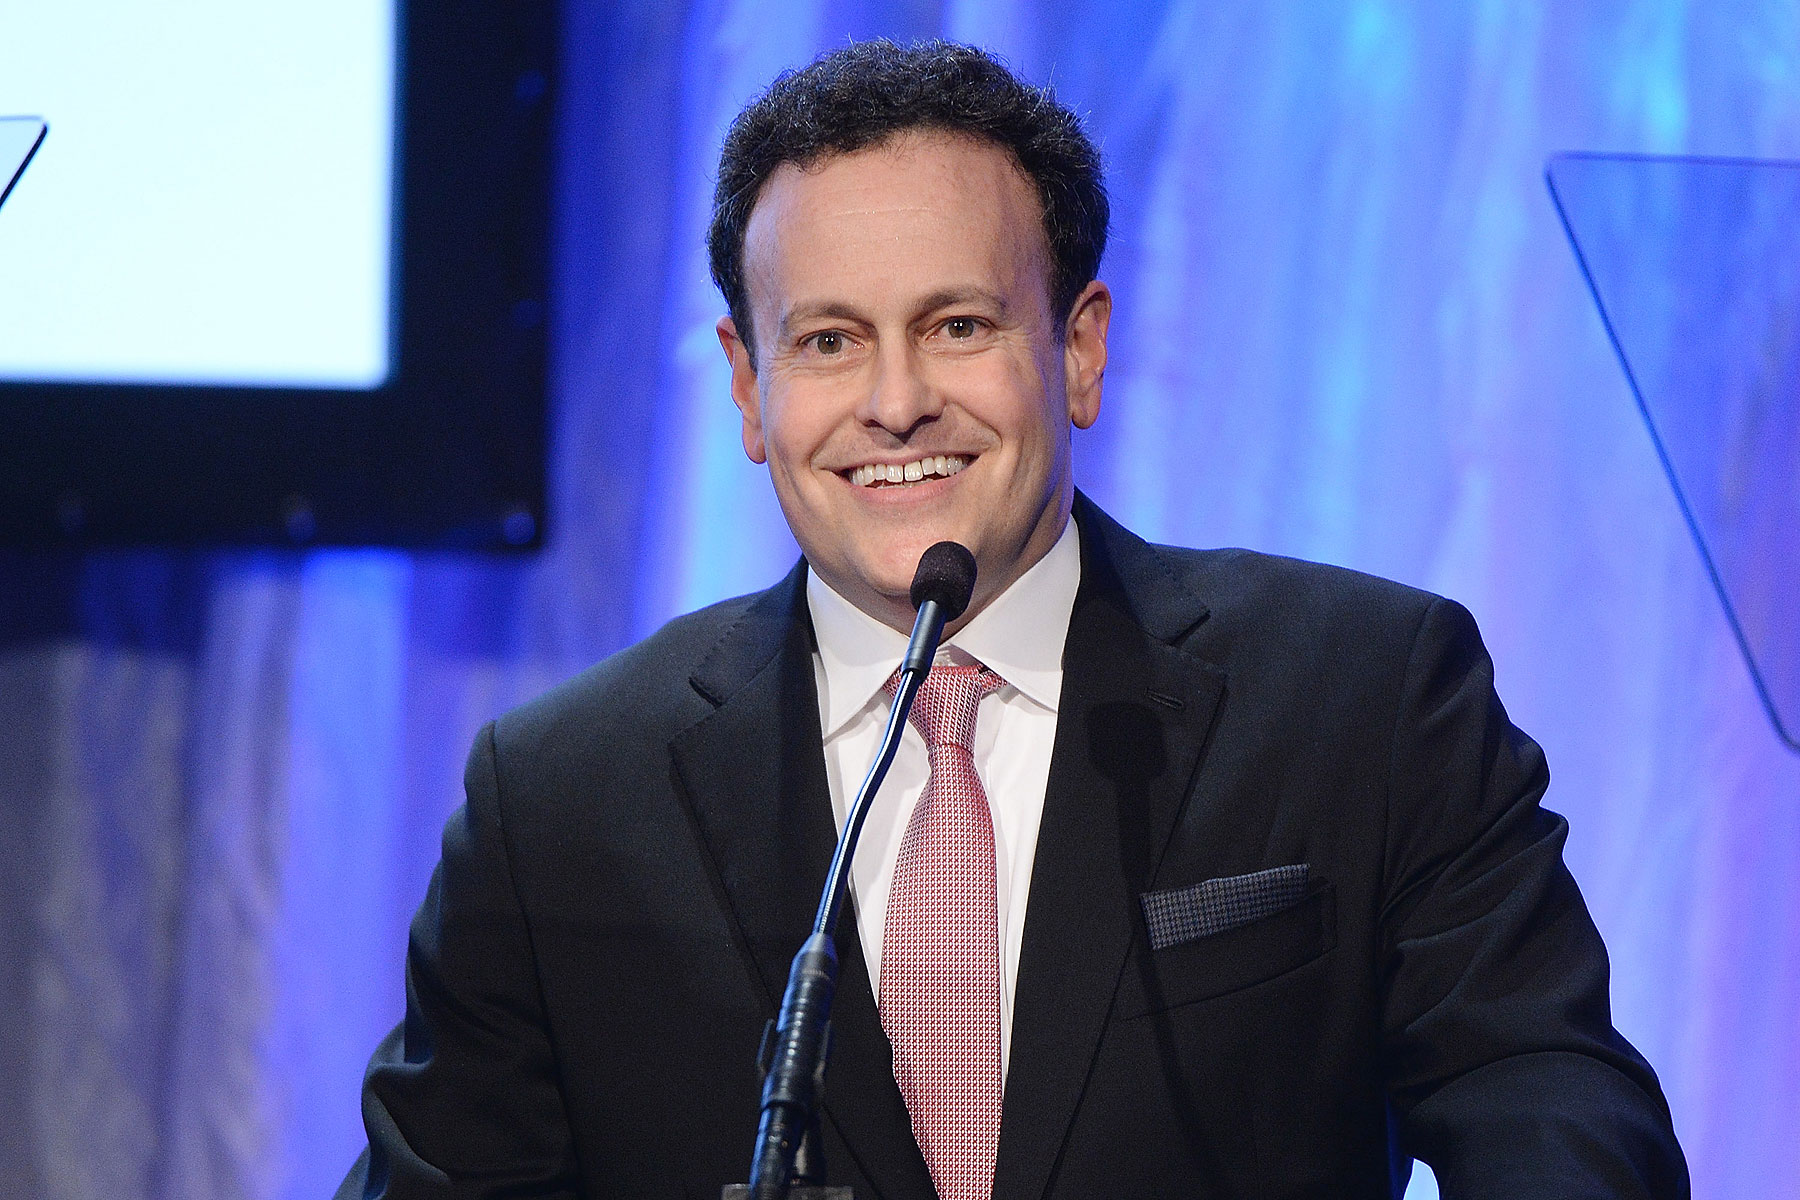 Producer Mitchell Hurwitz emcees Simon Wiesenthal Center's 2014 Tribute Dinner at Regent Beverly Wilshire Hotel on March 18, 2014 in Beverly Hills, California